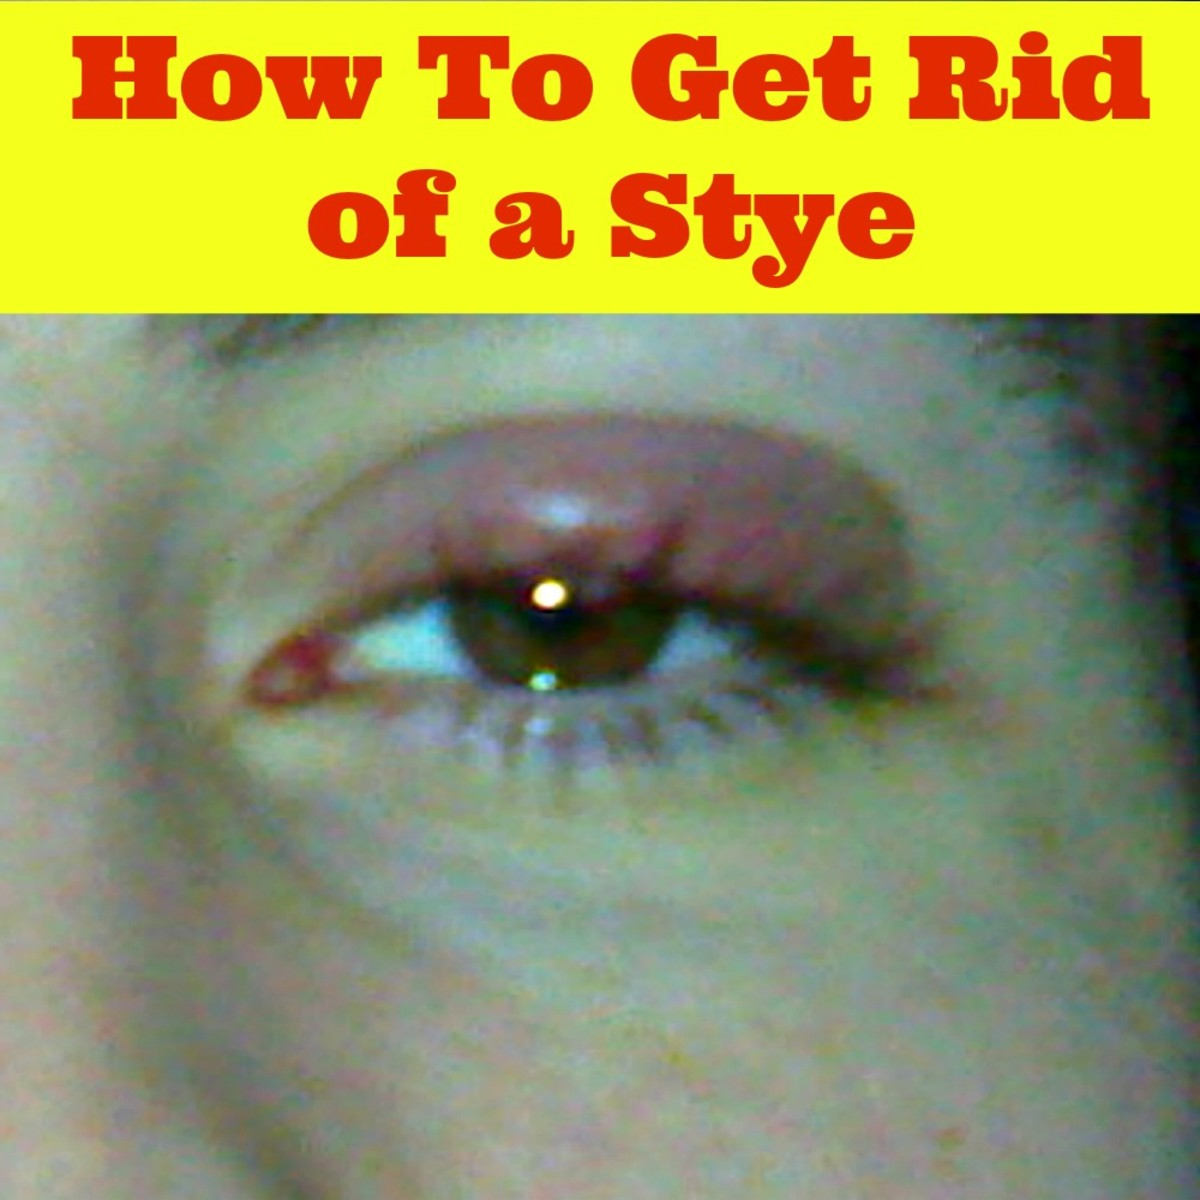 How To Get Rid of a Stye in Your Eye |Eye Stye Treatment